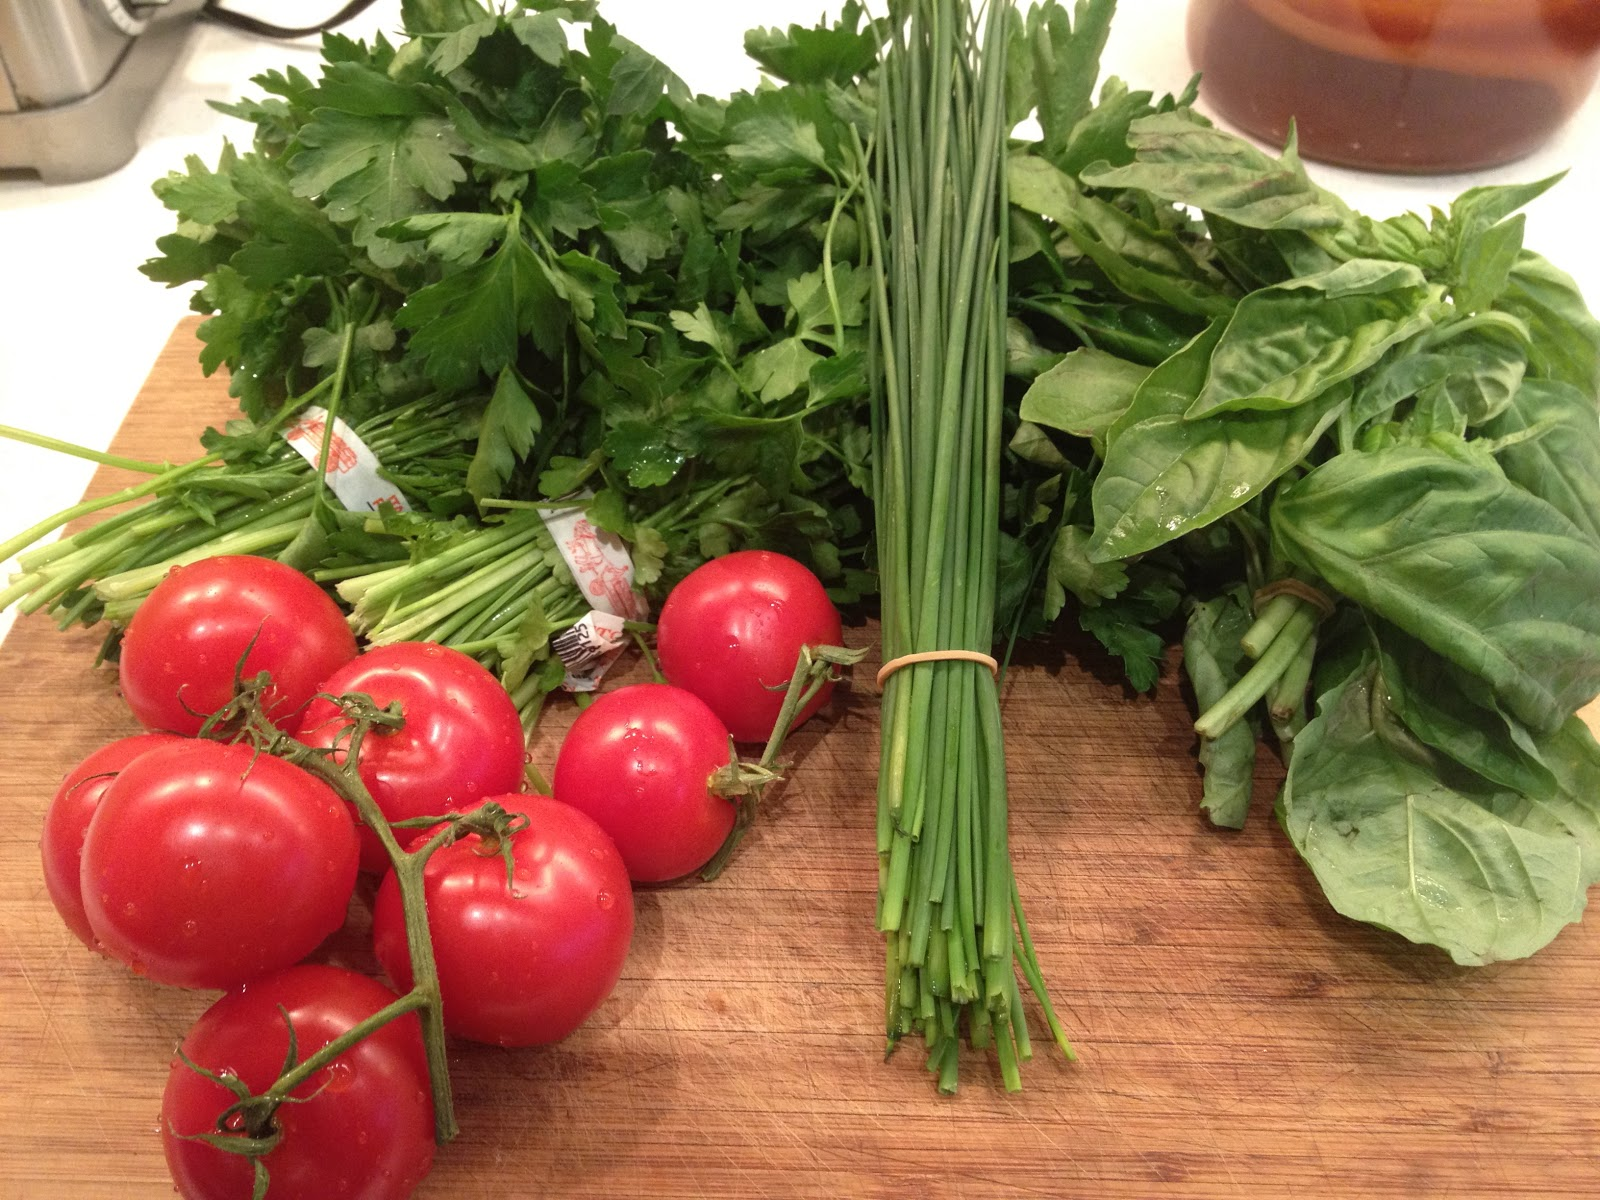 Tomatoes, parsley, chives, and basil. Also needed: onion and garlic ...